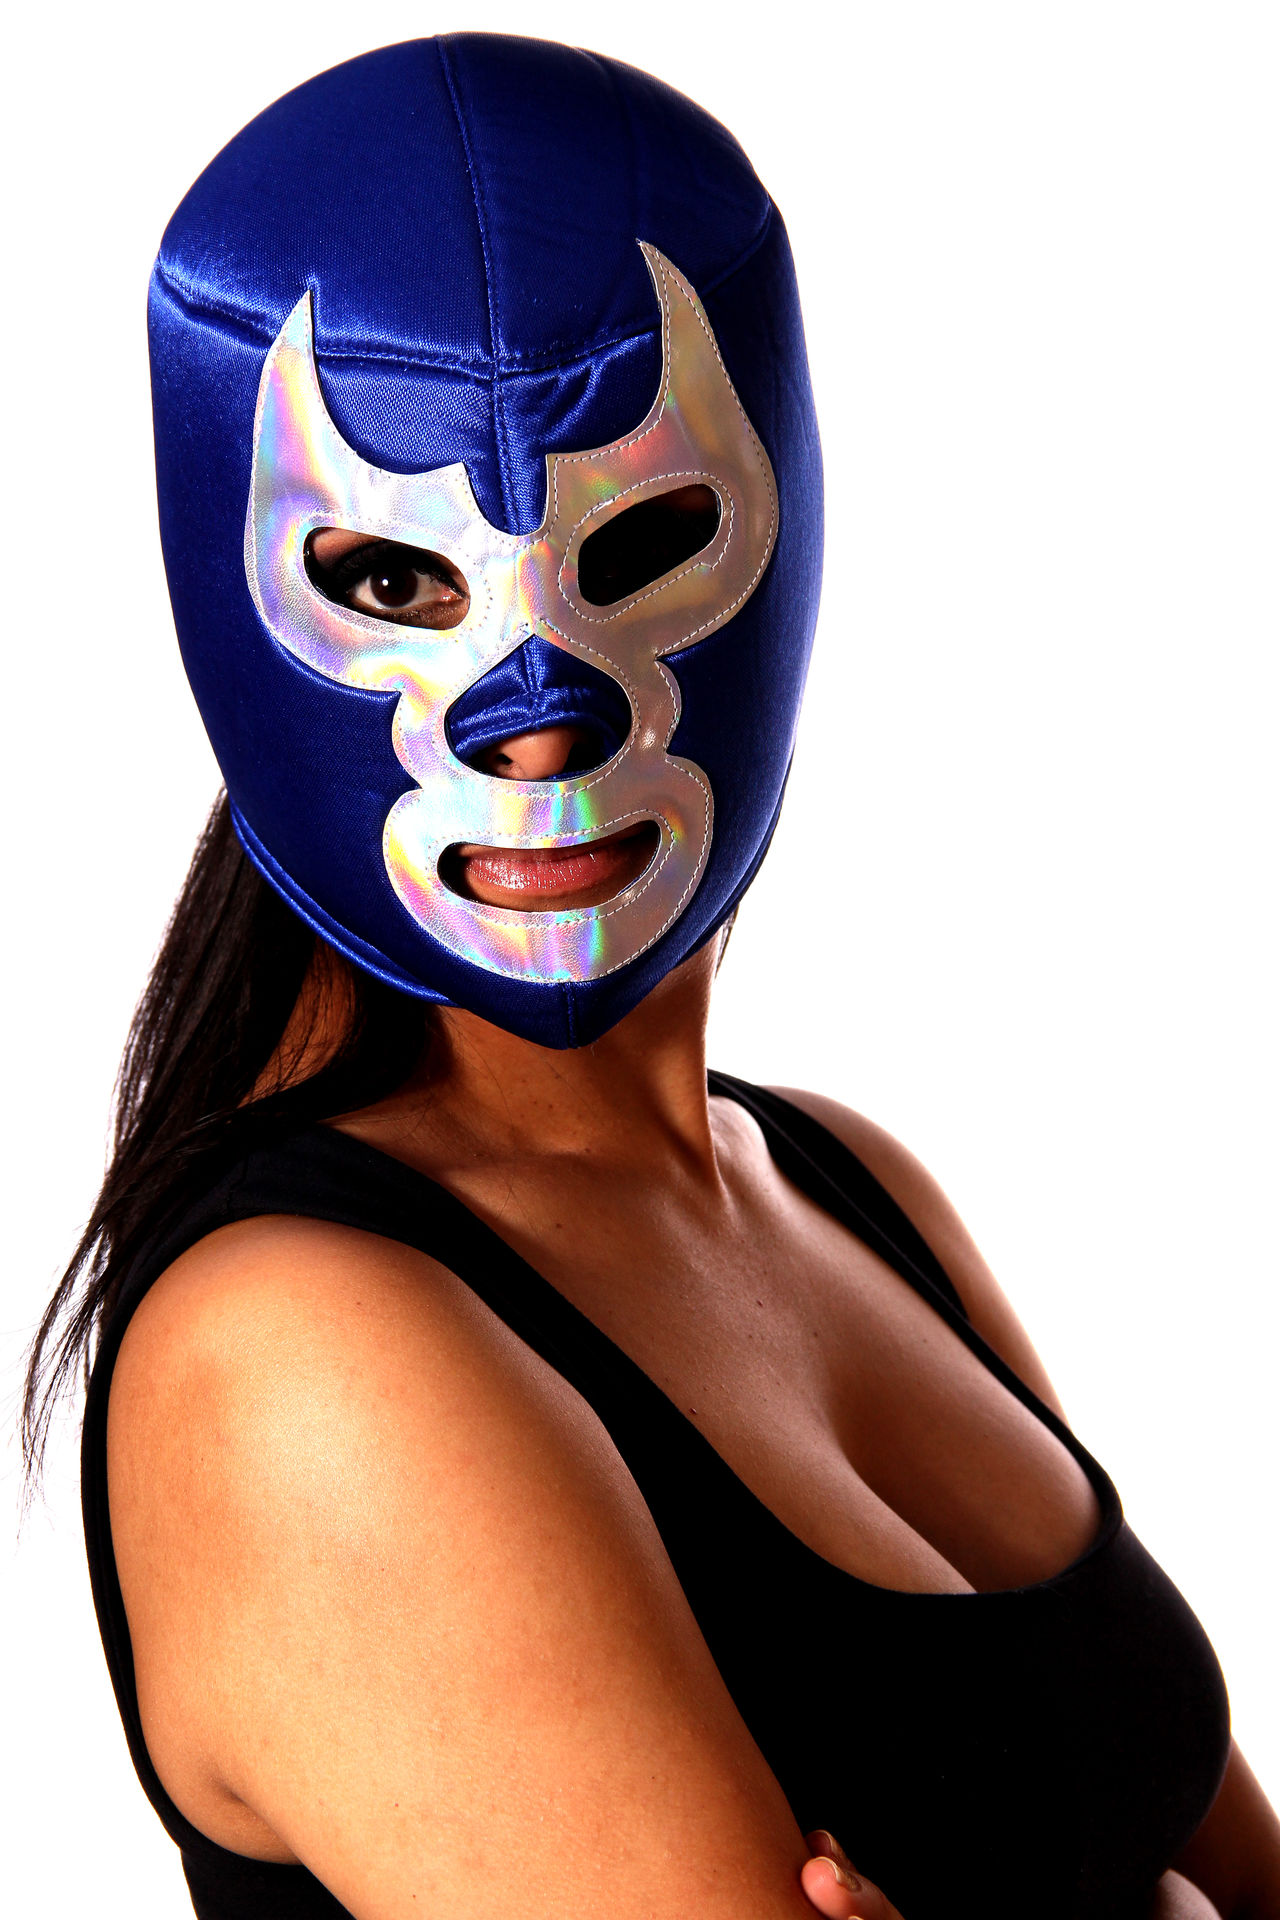 Beautiful Beauty Blue Demon Blue Demon Tribute Casual Clothing Close-up Lady Latin Latina Leisure Activity Lifestyles Mexico Mexico City Popular Portrait Portrait Of A Woman Tradition Traditional Culture Tribute Woman Uniqueness